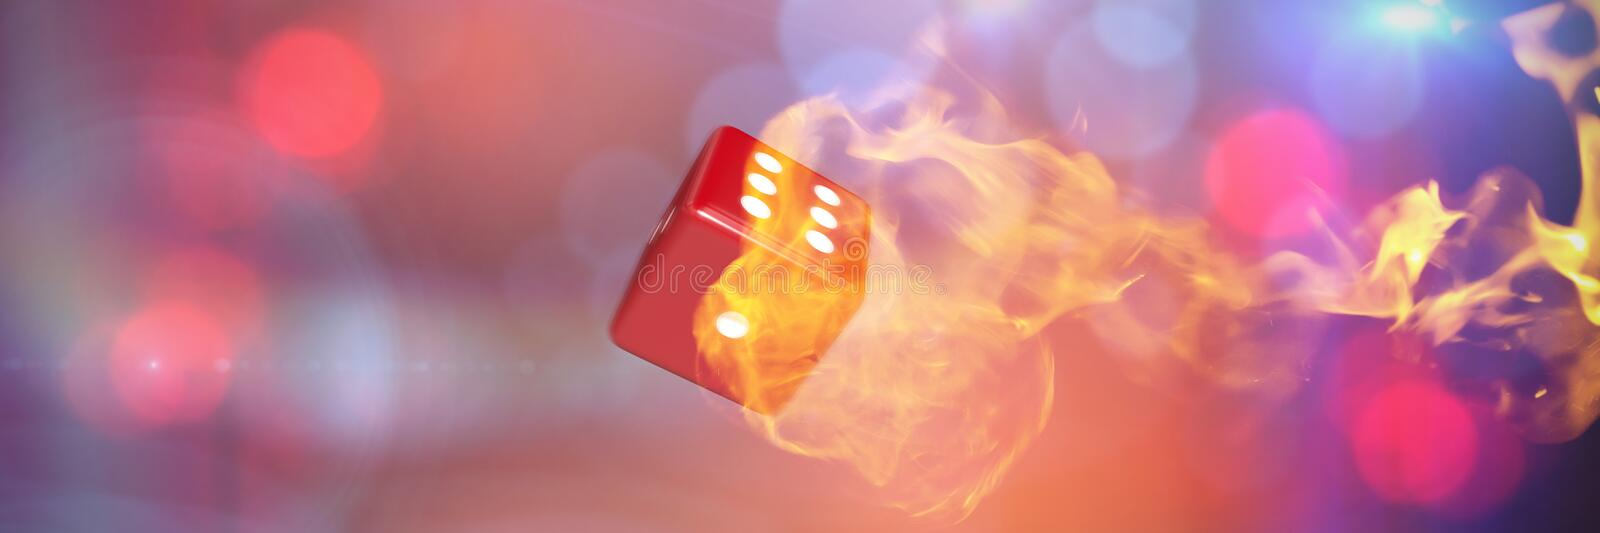 Composite image of computer graphic image of 3d dice. Computer graphic image of 3D dice against fire royalty free stock photo